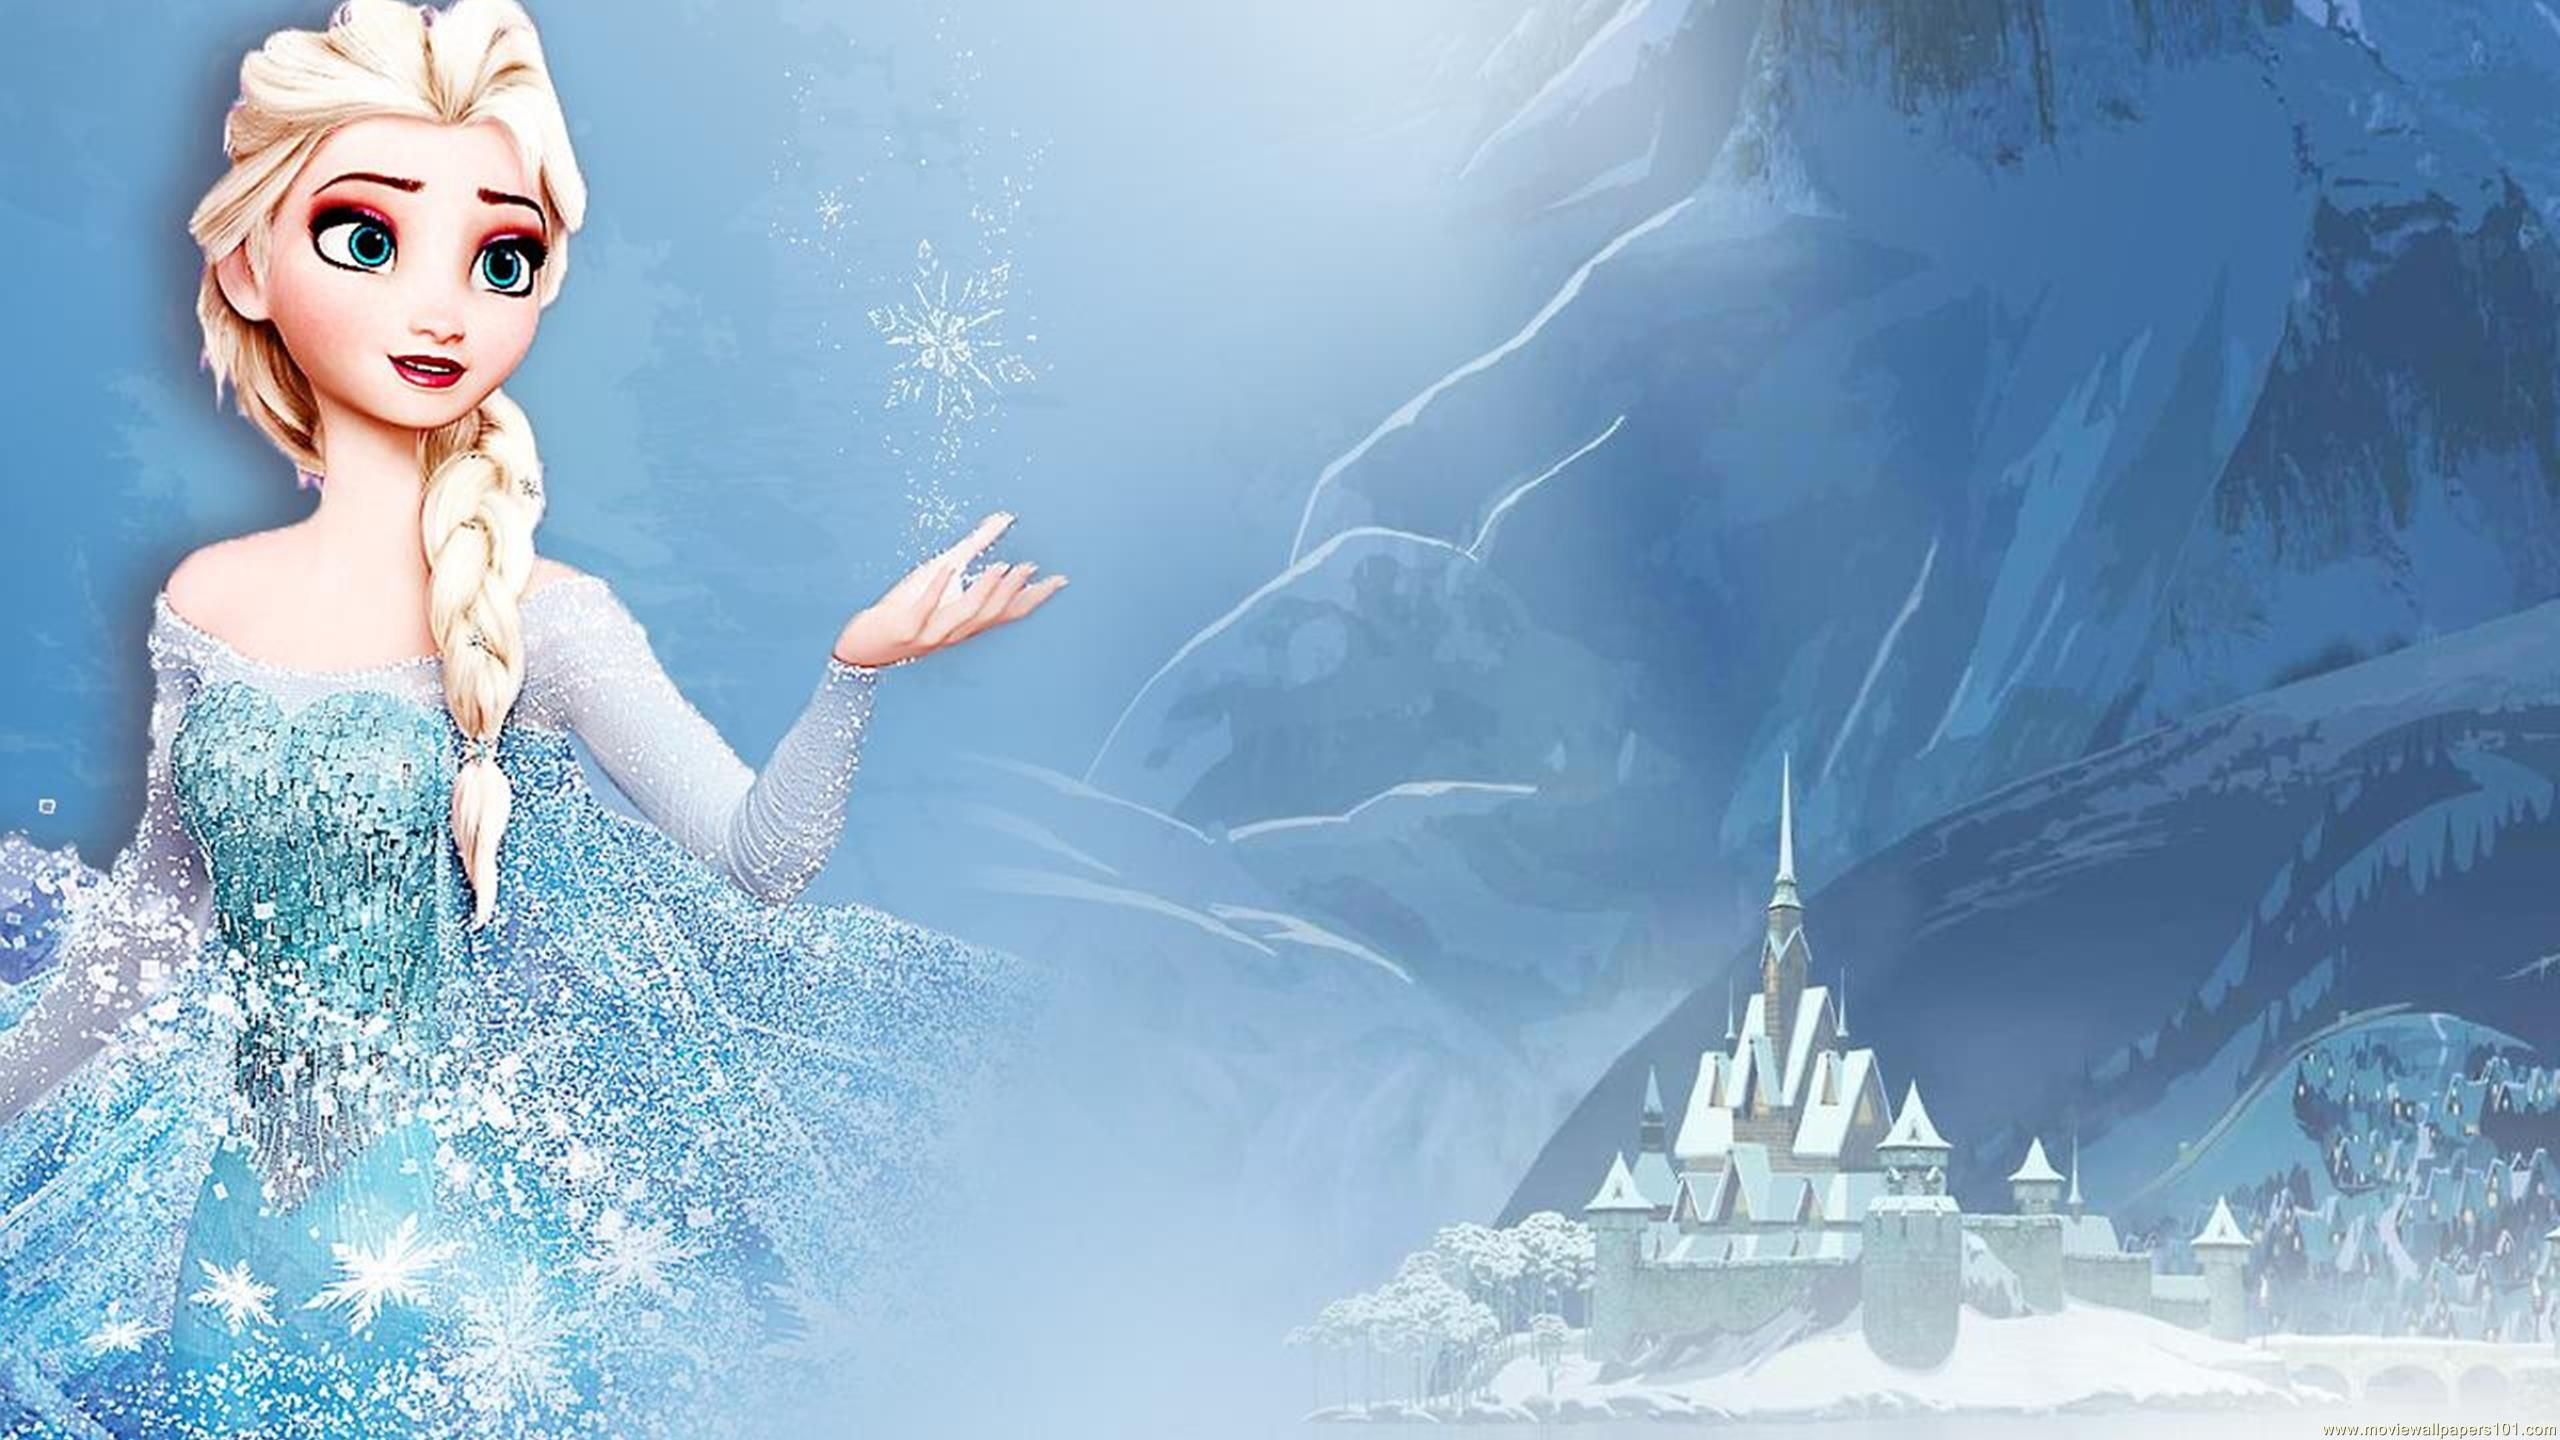 Elsa wallpaper frozen hd - Frozen cartoon wallpaper ...